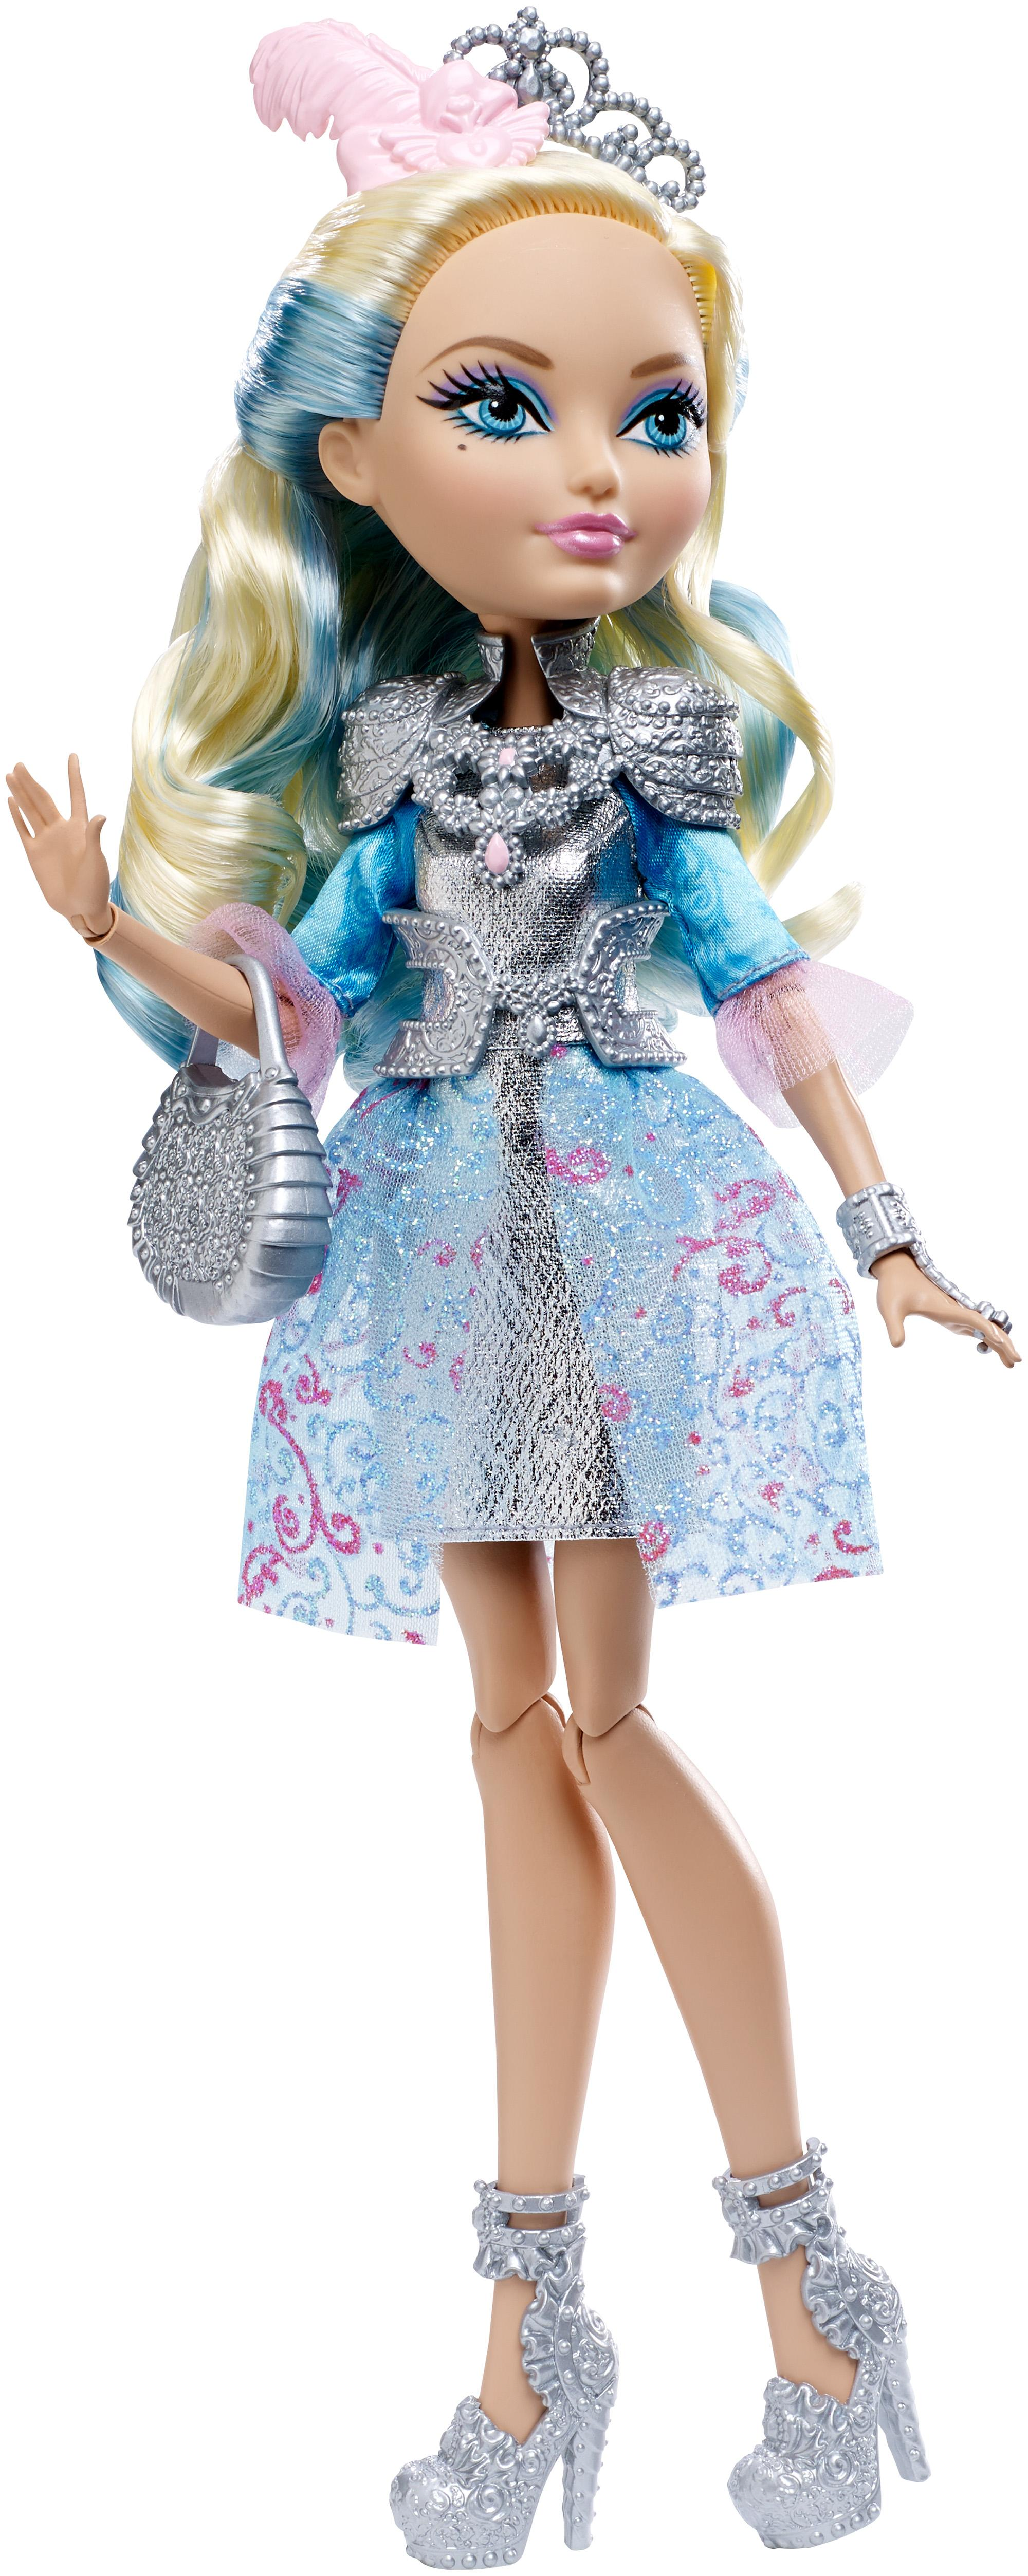 Amazon.com: Ever After High Darling Charming Doll: Toys ...